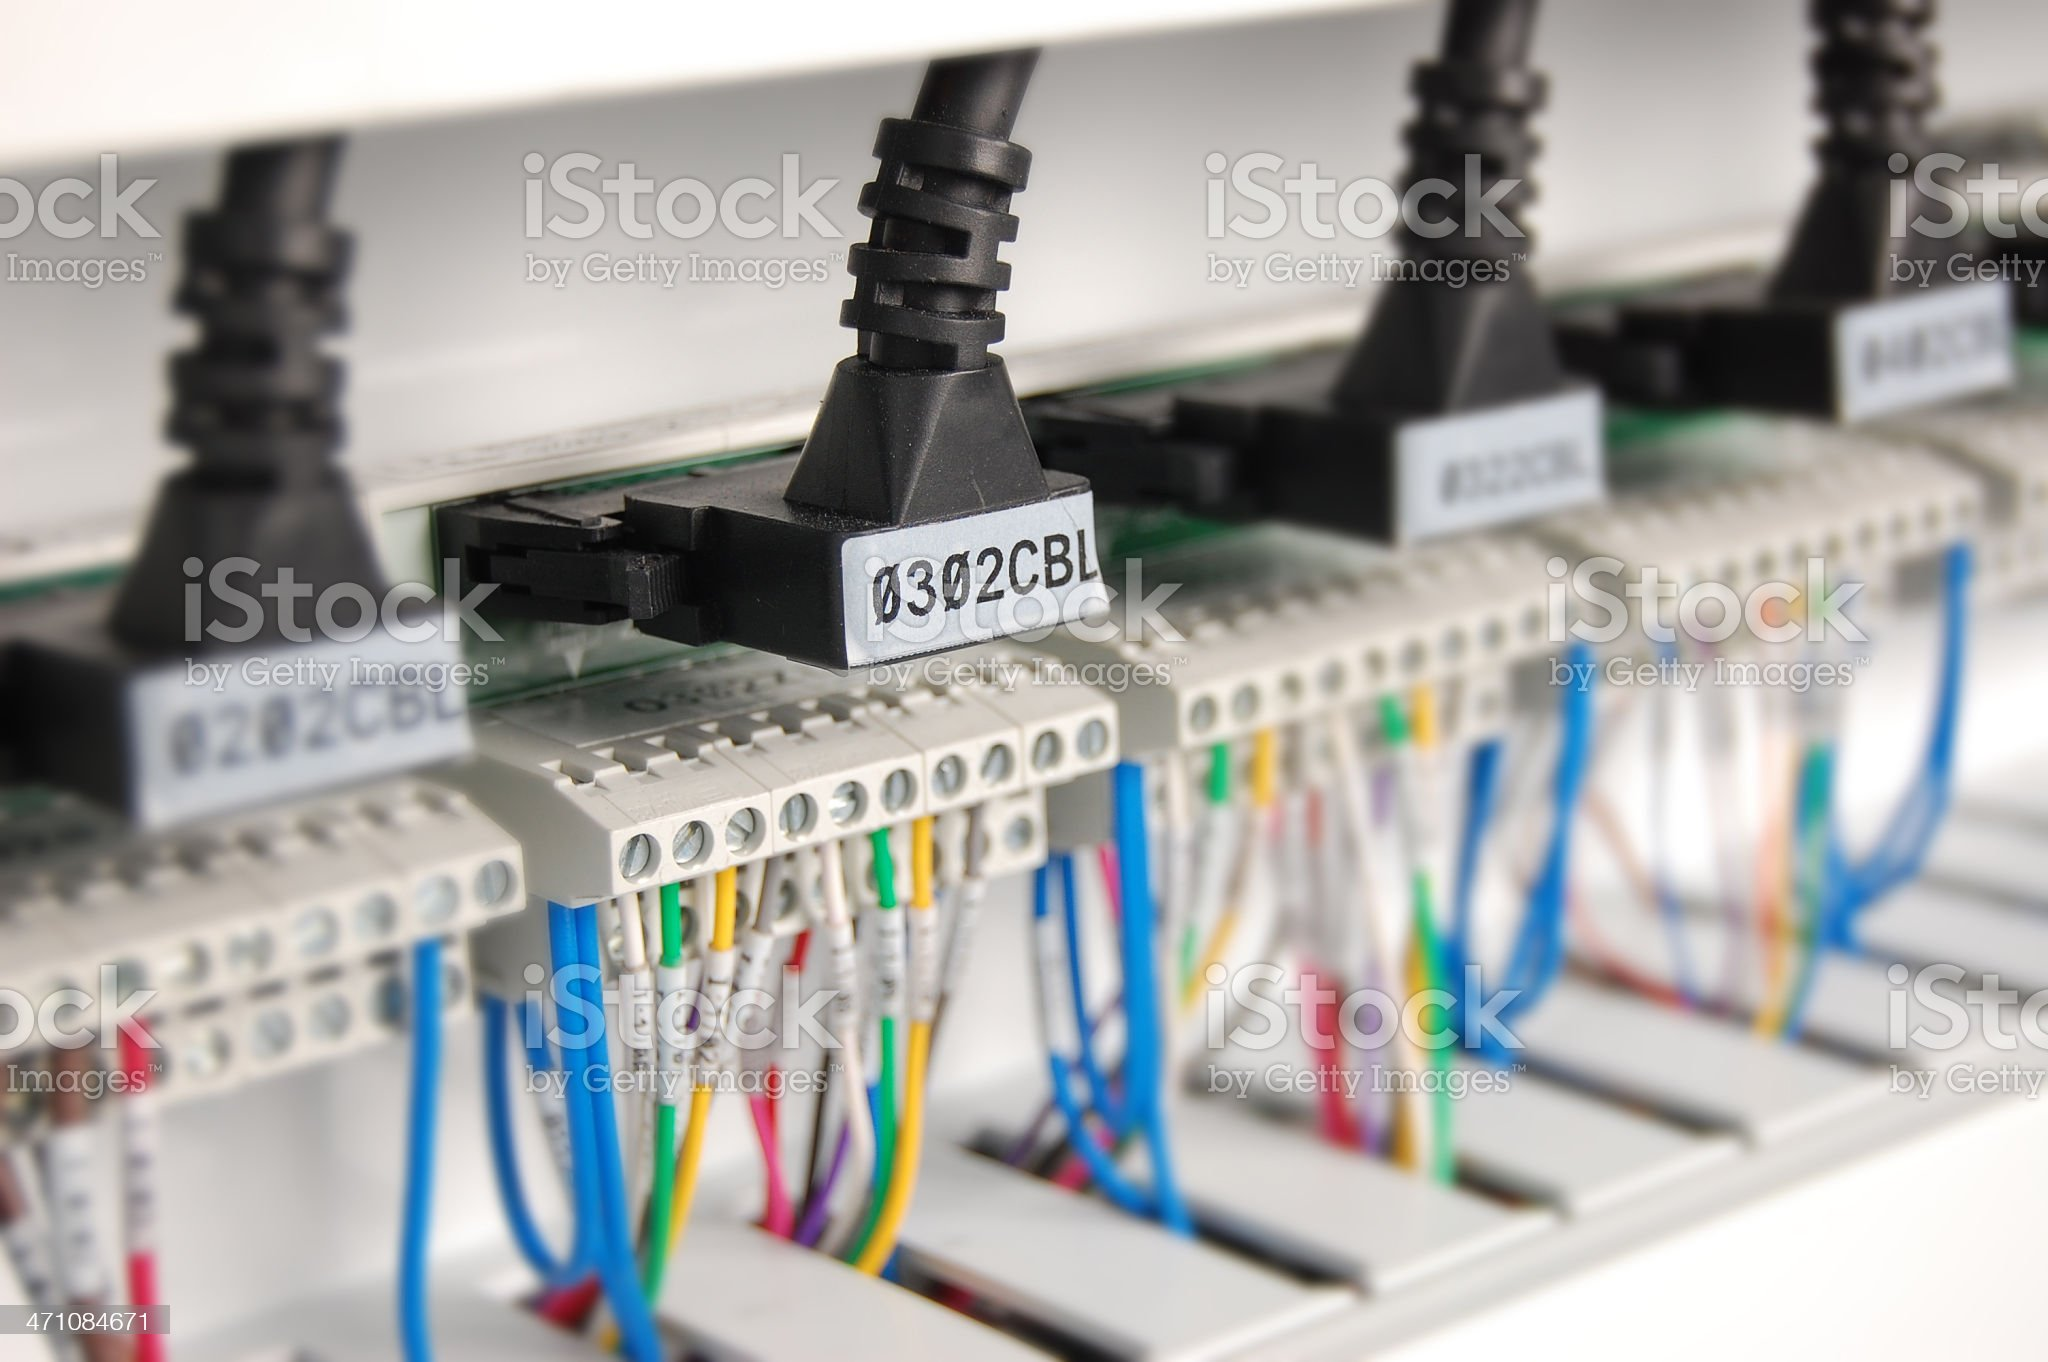 Wiring in a Control Cabinet royalty-free stock photo